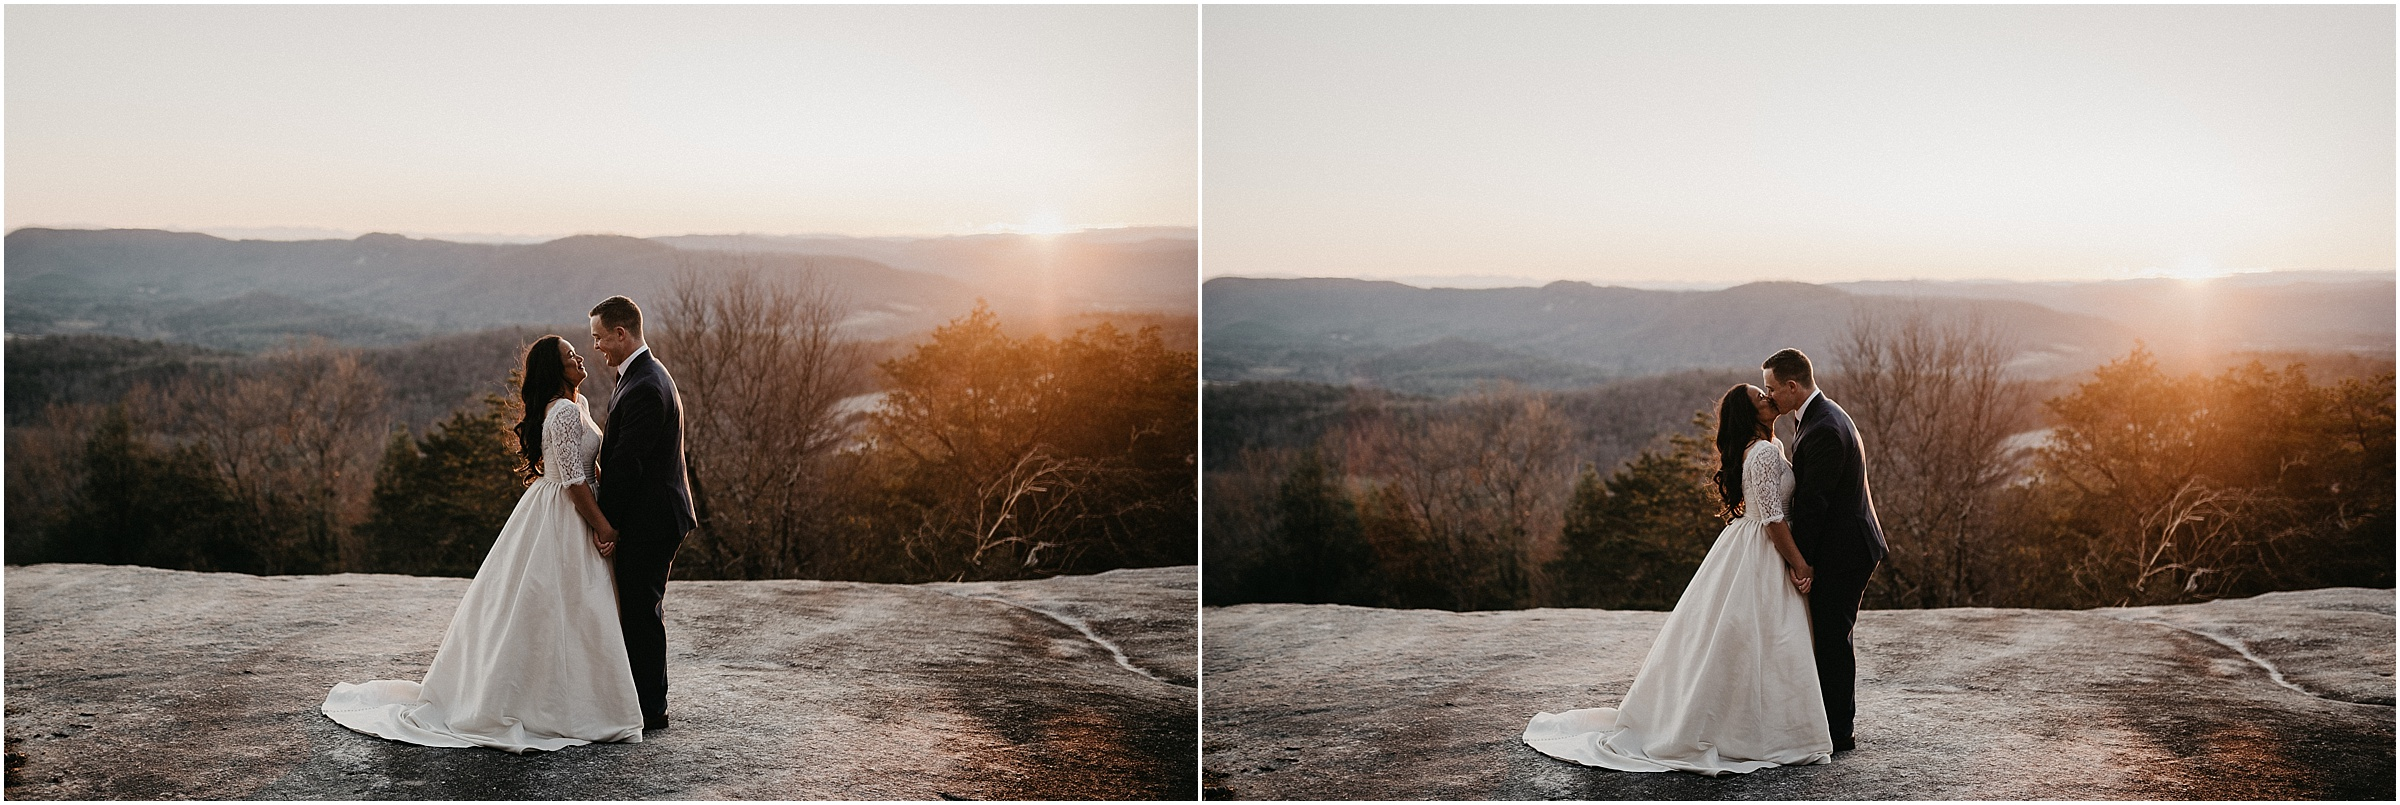 Stone_Mountain_NC_Elopement_55.JPG